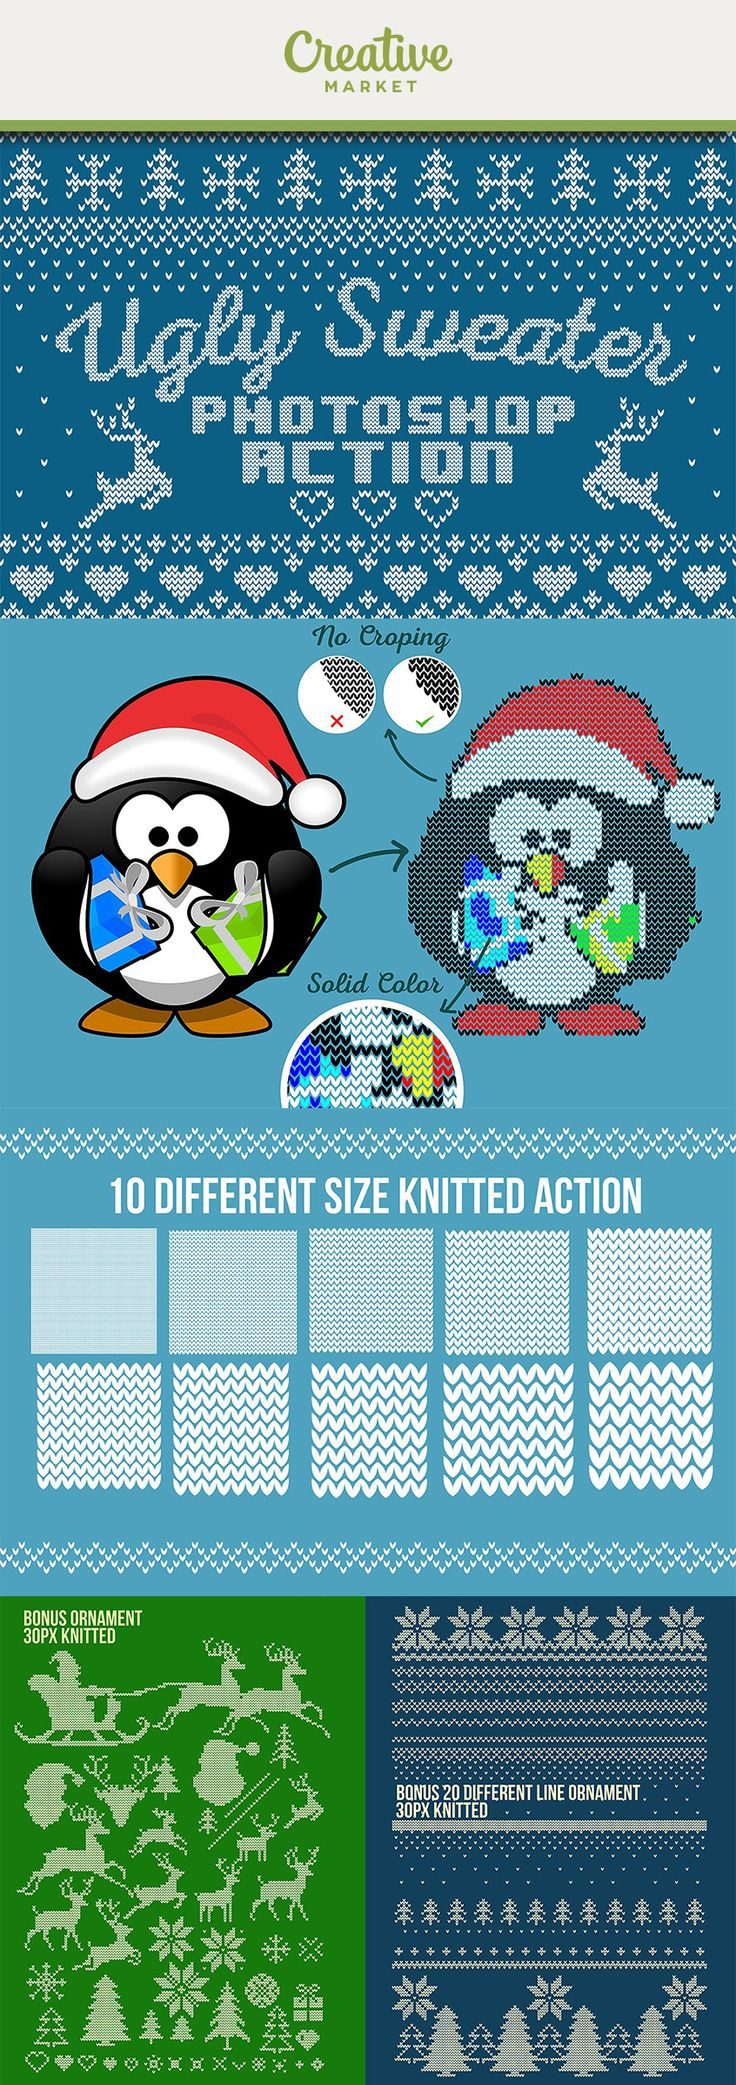 #affiliate in just one click you can change any text, font, Line, shape, image, even Photo become a knitted pattern in few seconds. Christmas photoshop effects, ugly sweater action